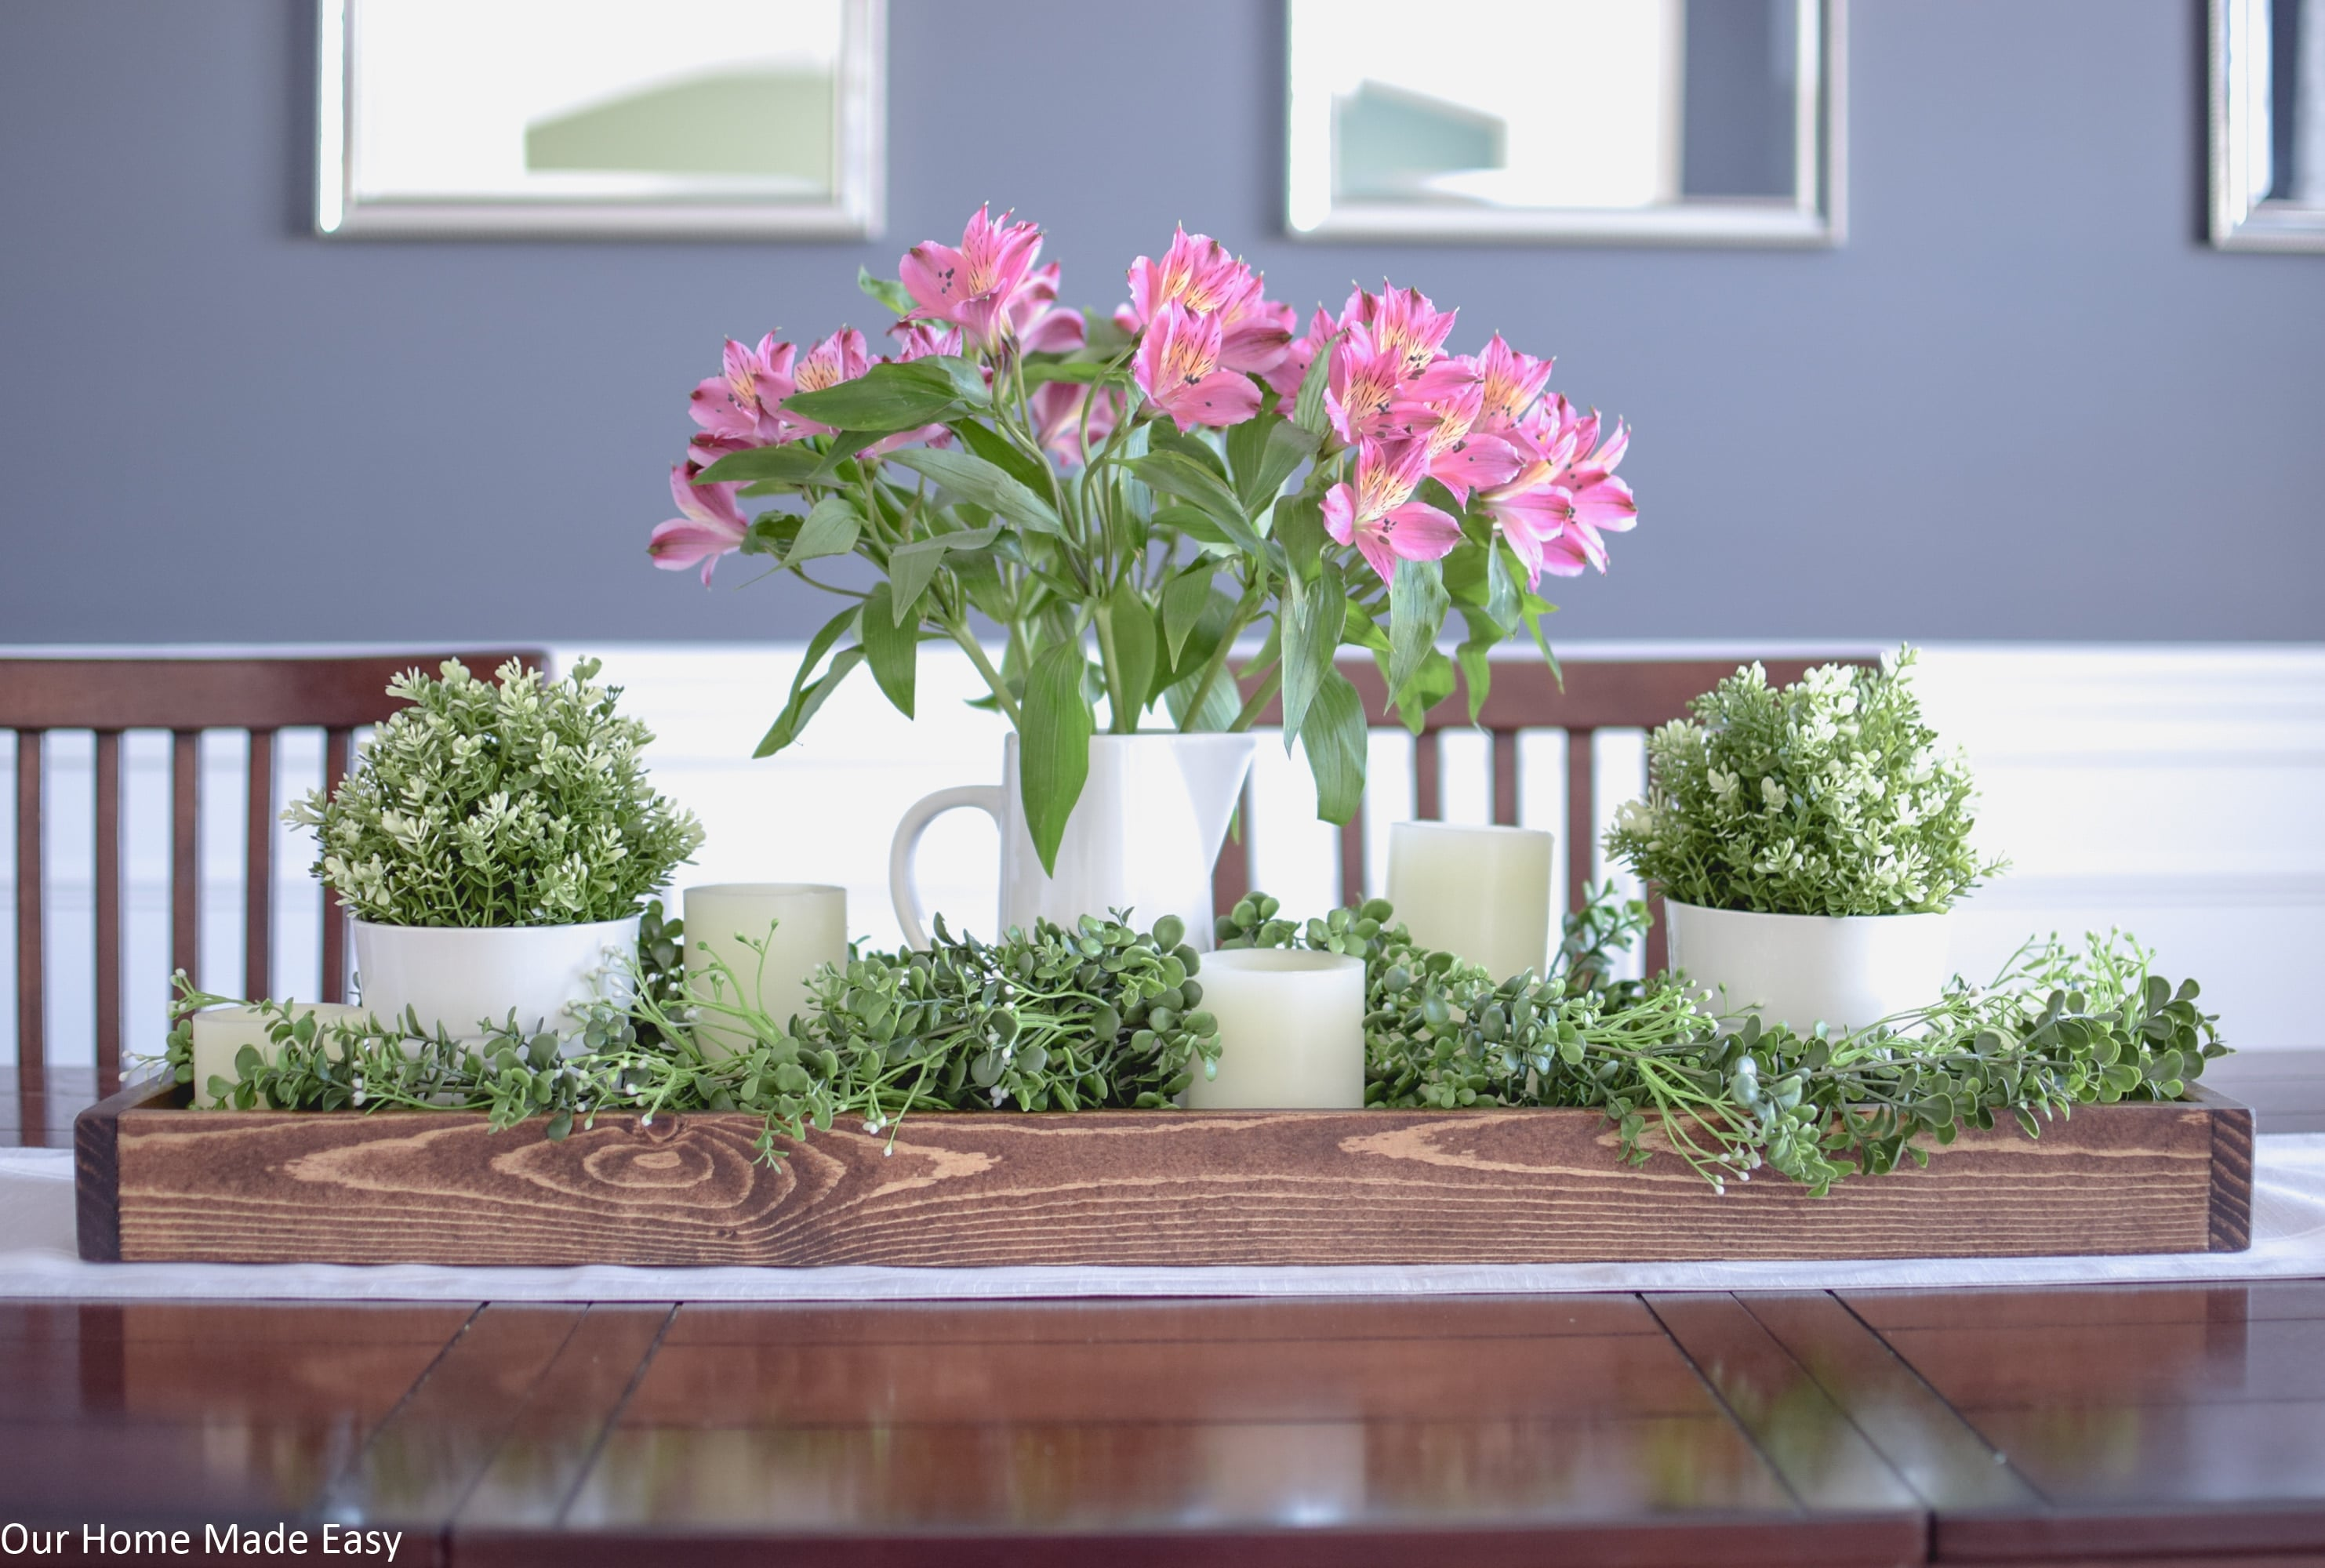 This bright and colorful Spring centerpiece is has faux flowers an greenery for a long-lasting and fresh look